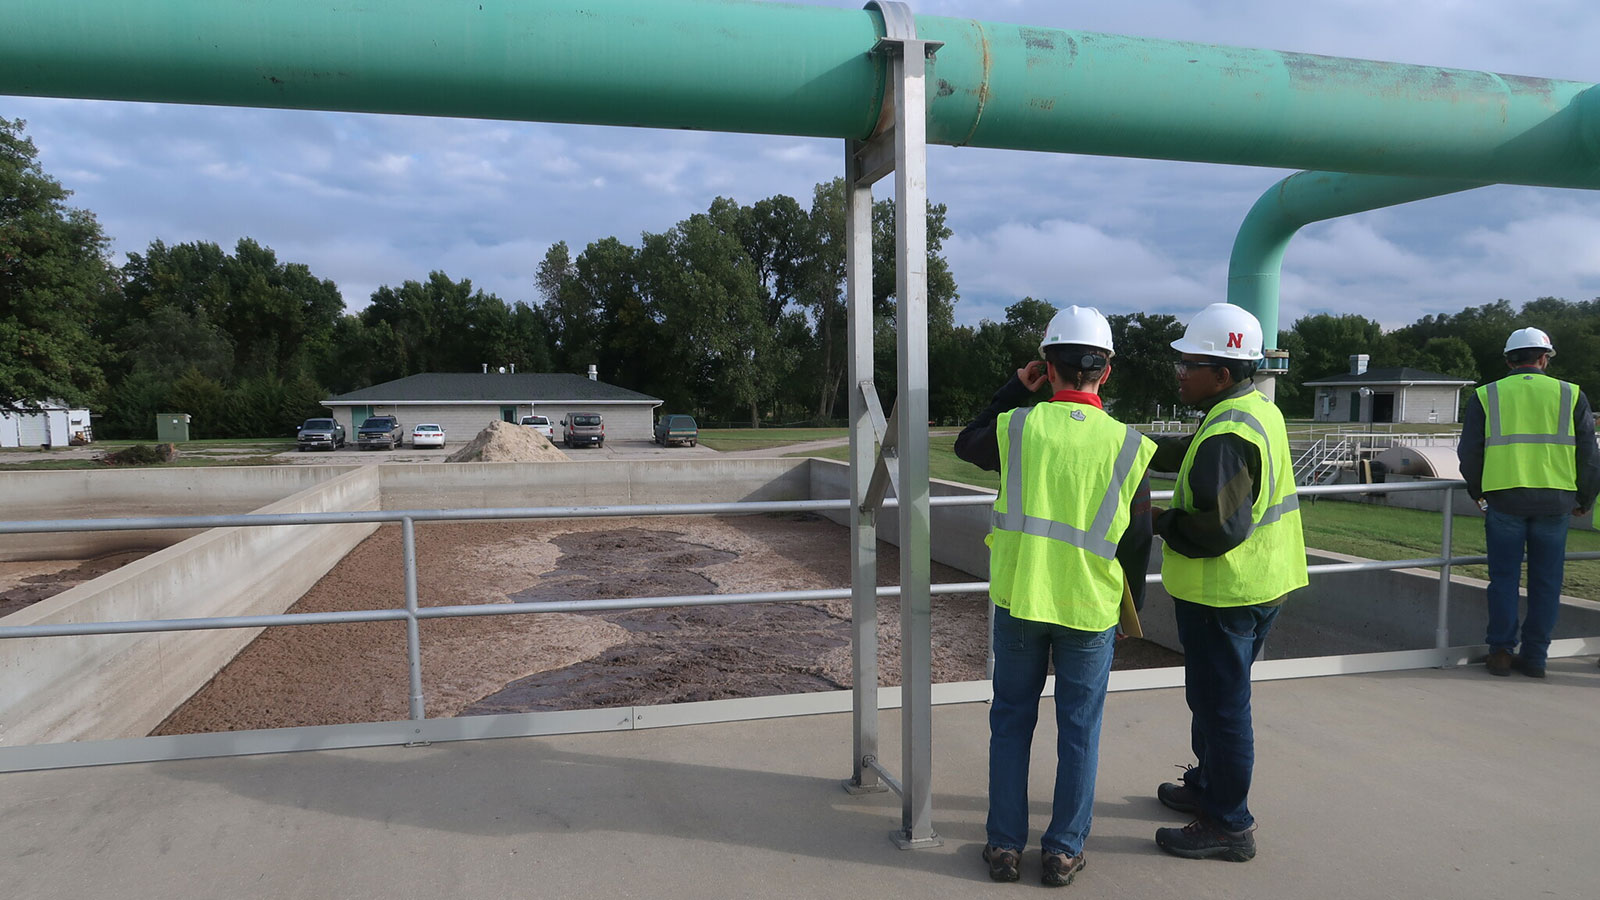 Viewing Water plant basin on a tour